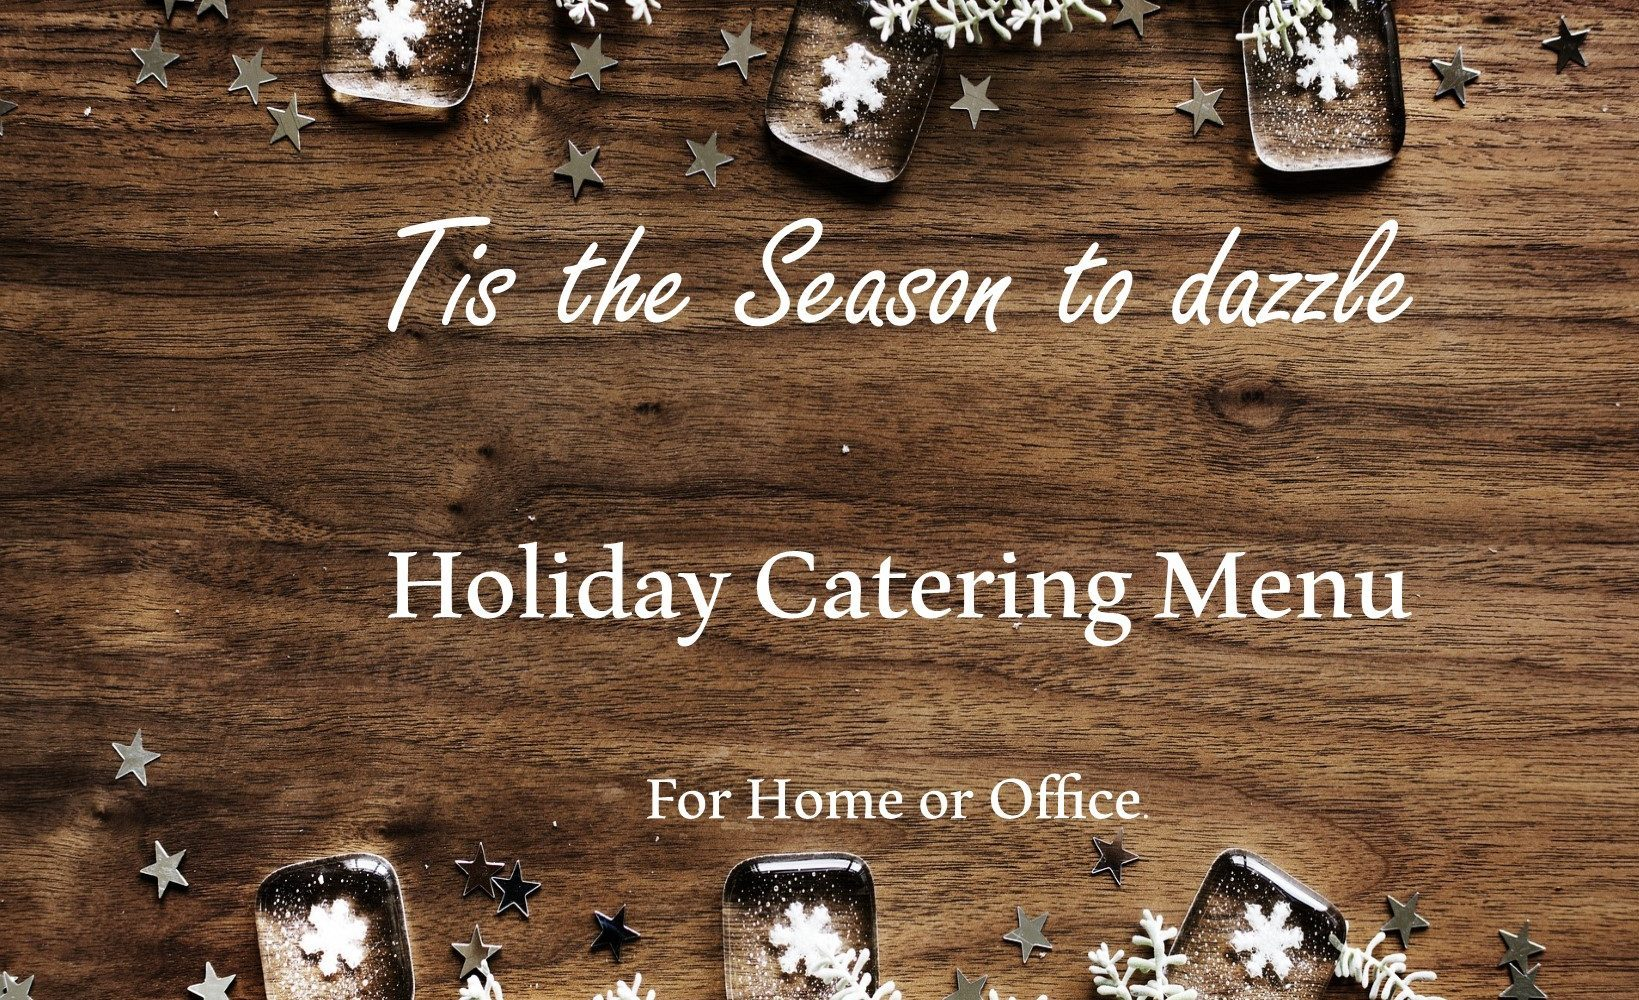 https://cozycaterers.com/wp-content/uploads/2019/11/holiday-menu-2019-1639x1000.jpg